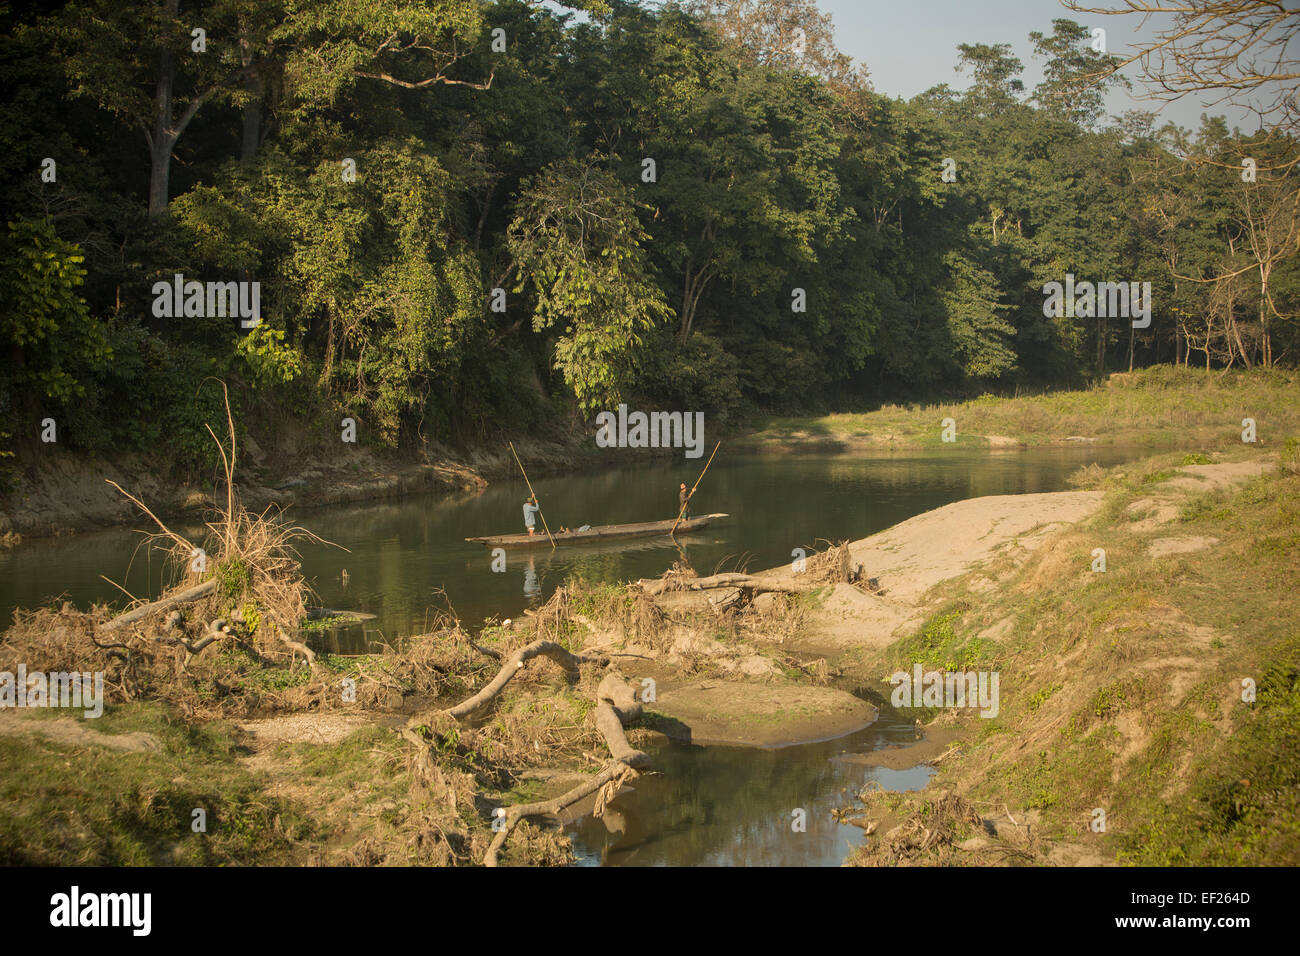 Boaters on the Rapti River - Chitwan National Park, Nepal - Stock Image